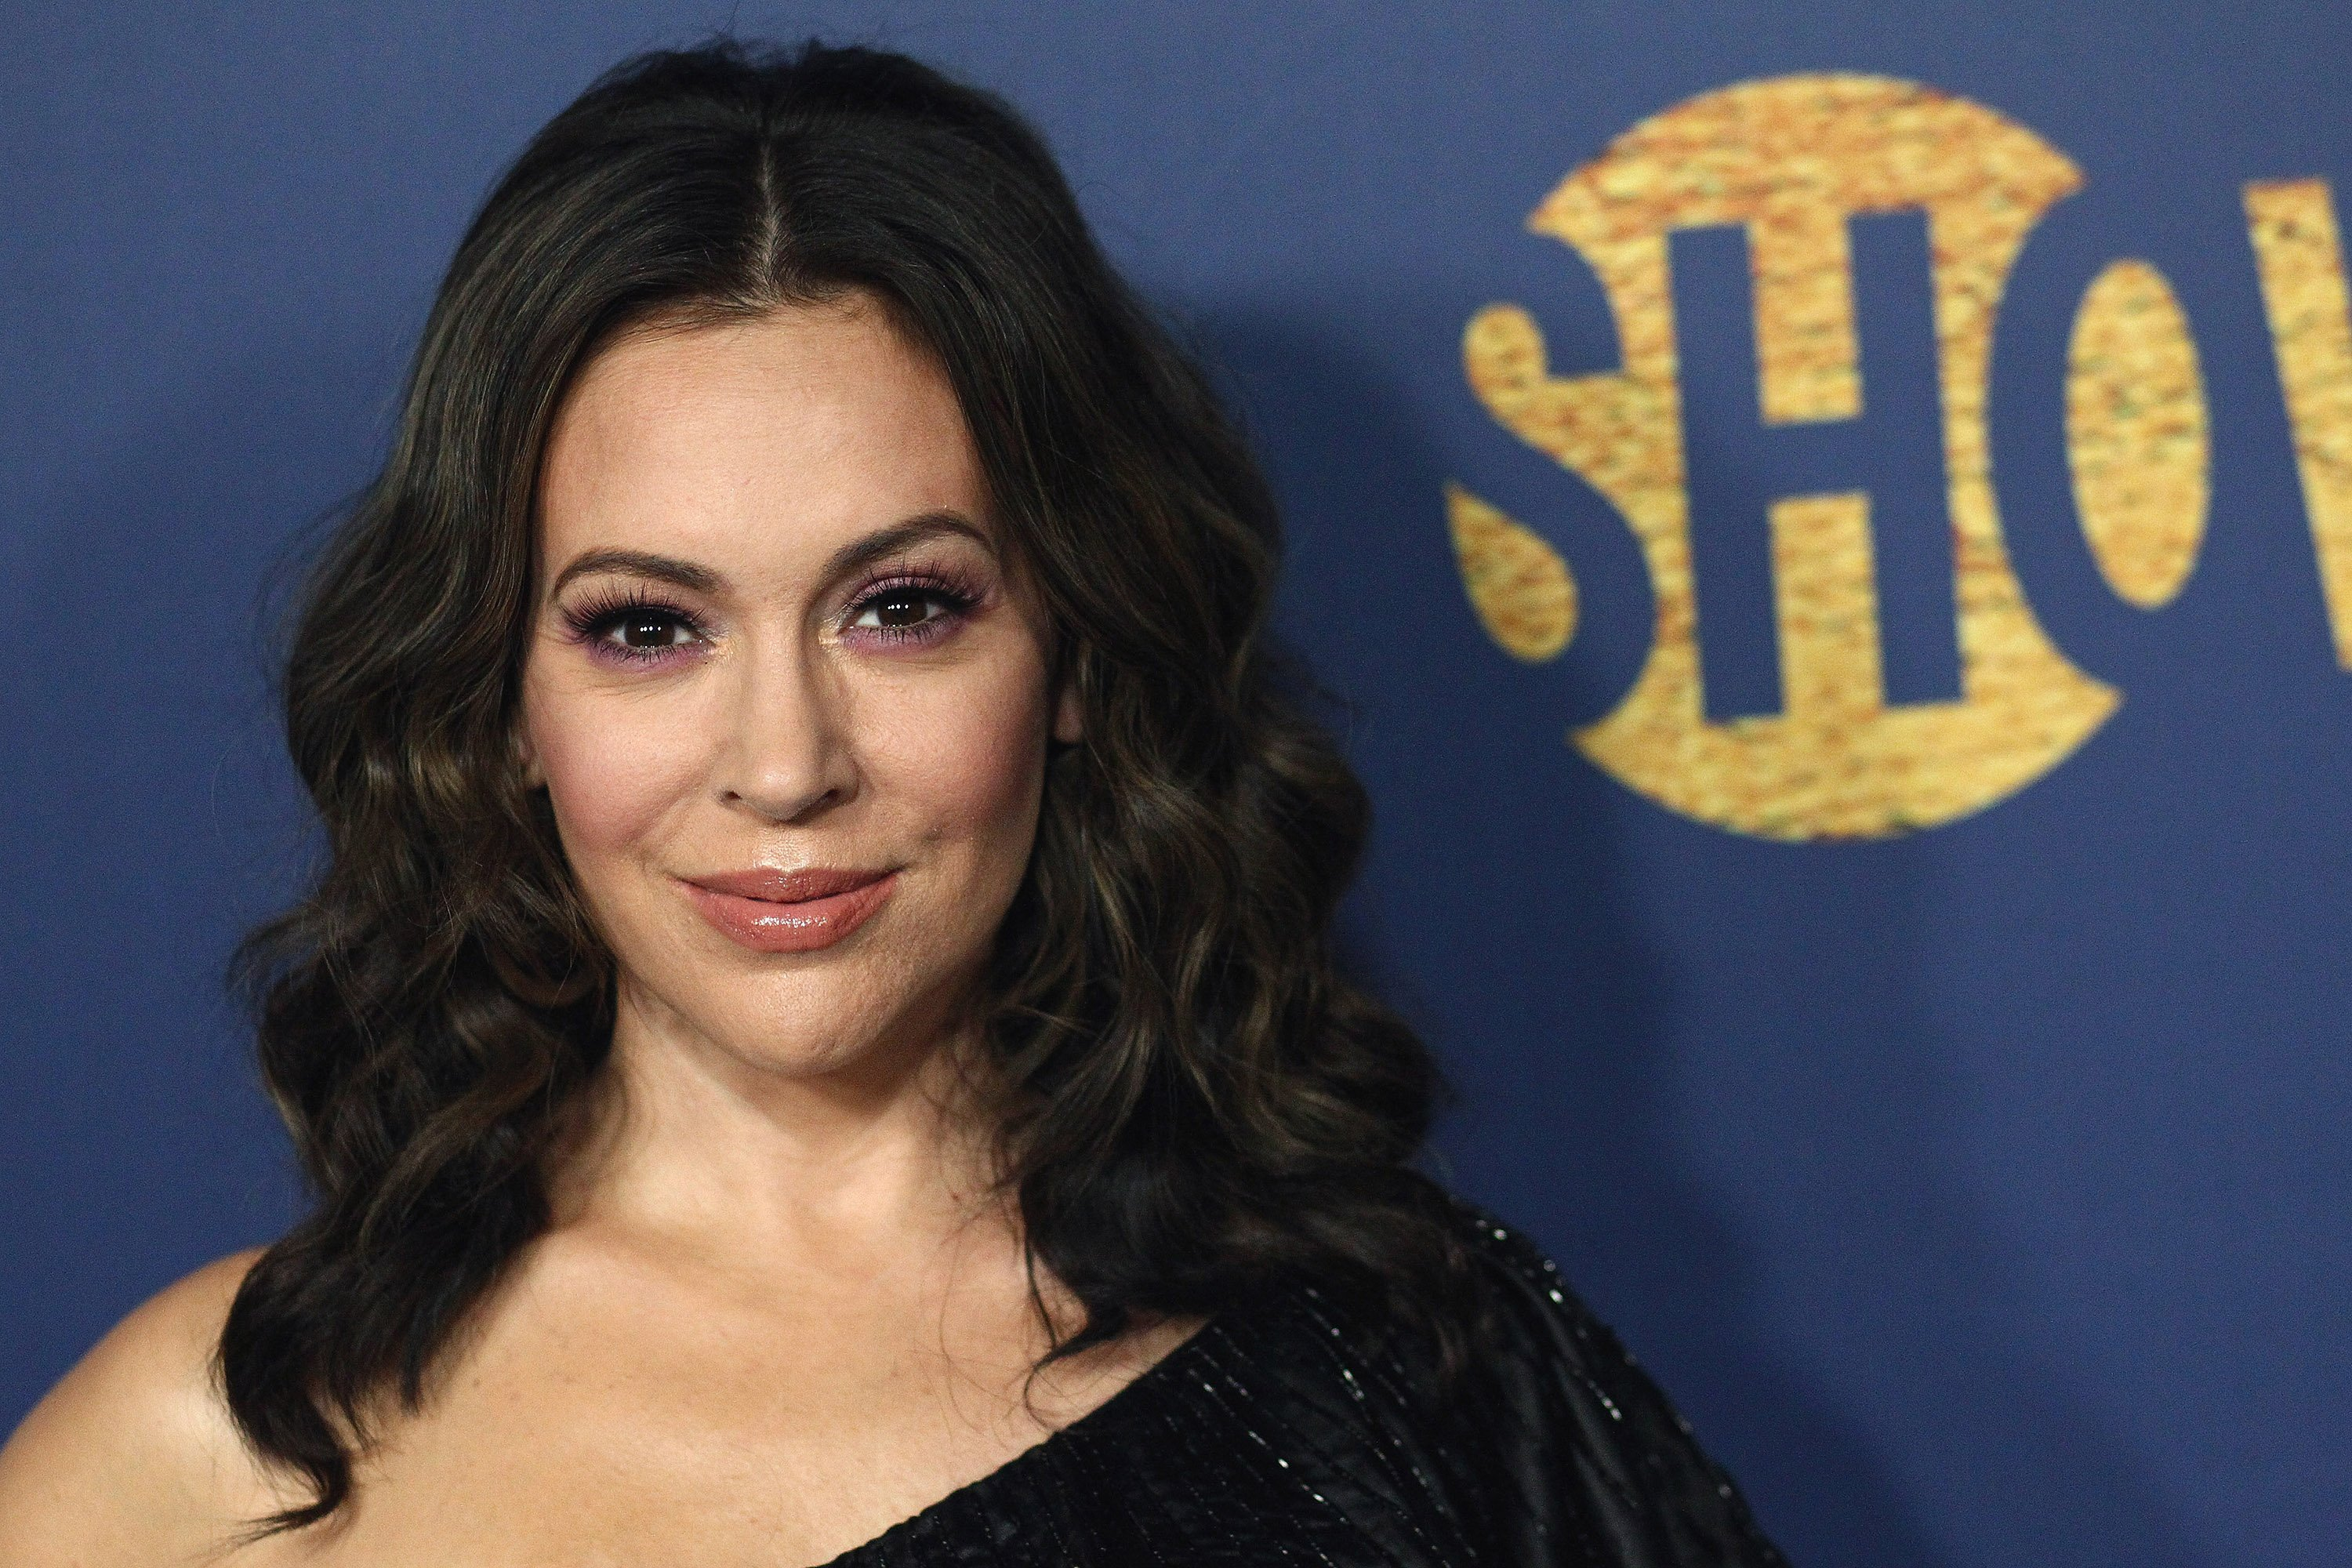 Alyssa Milano attends the Showtime Emmy Eve Nominees Celebration at Chateau Marmont on September 16, 2018 | Photo: Getty Images